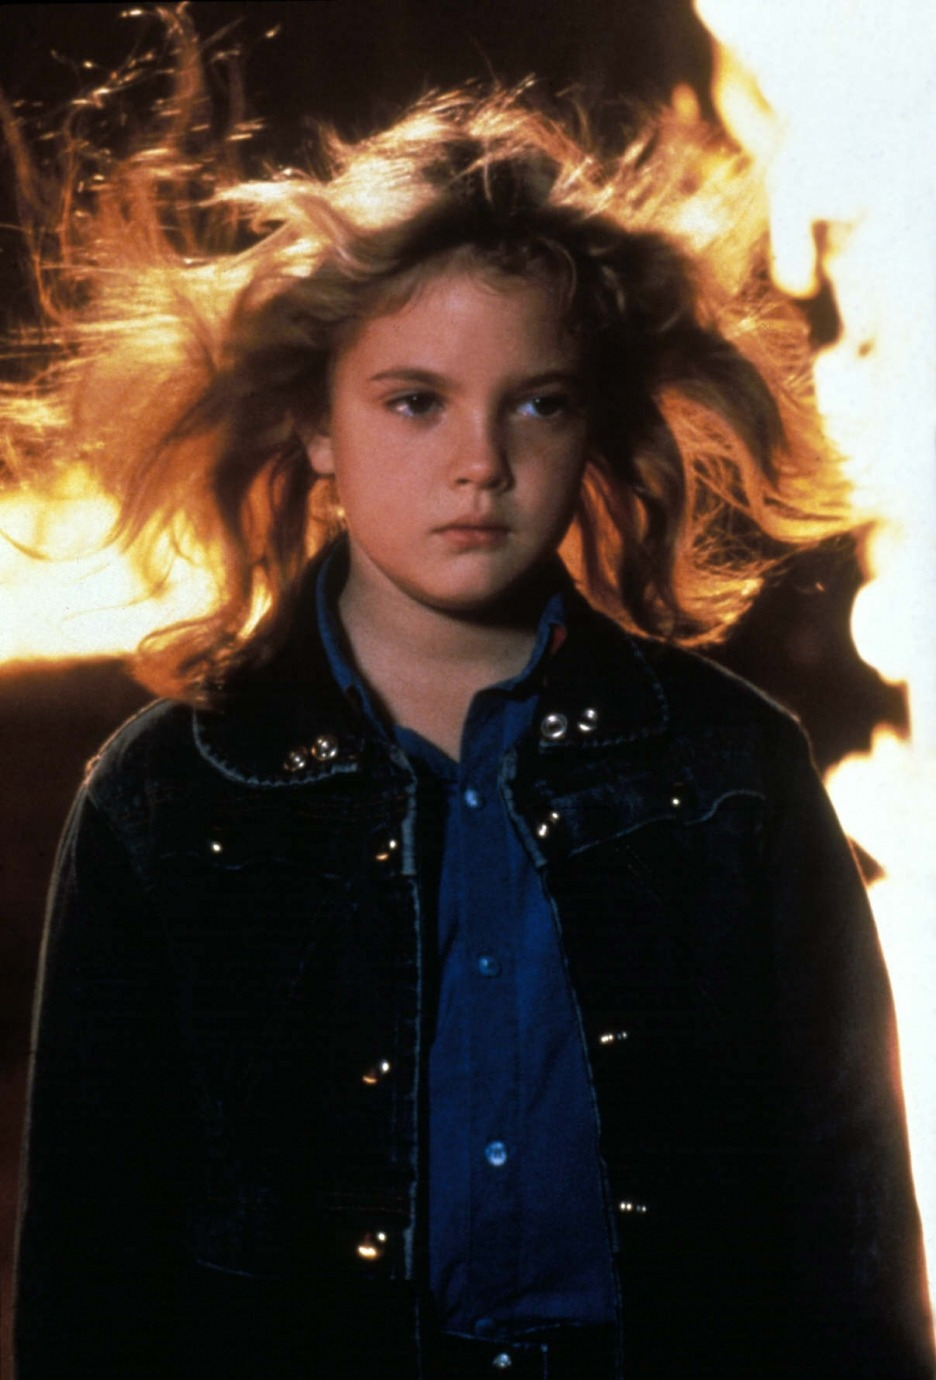 Drew Barrymore in Firestarter (1984)